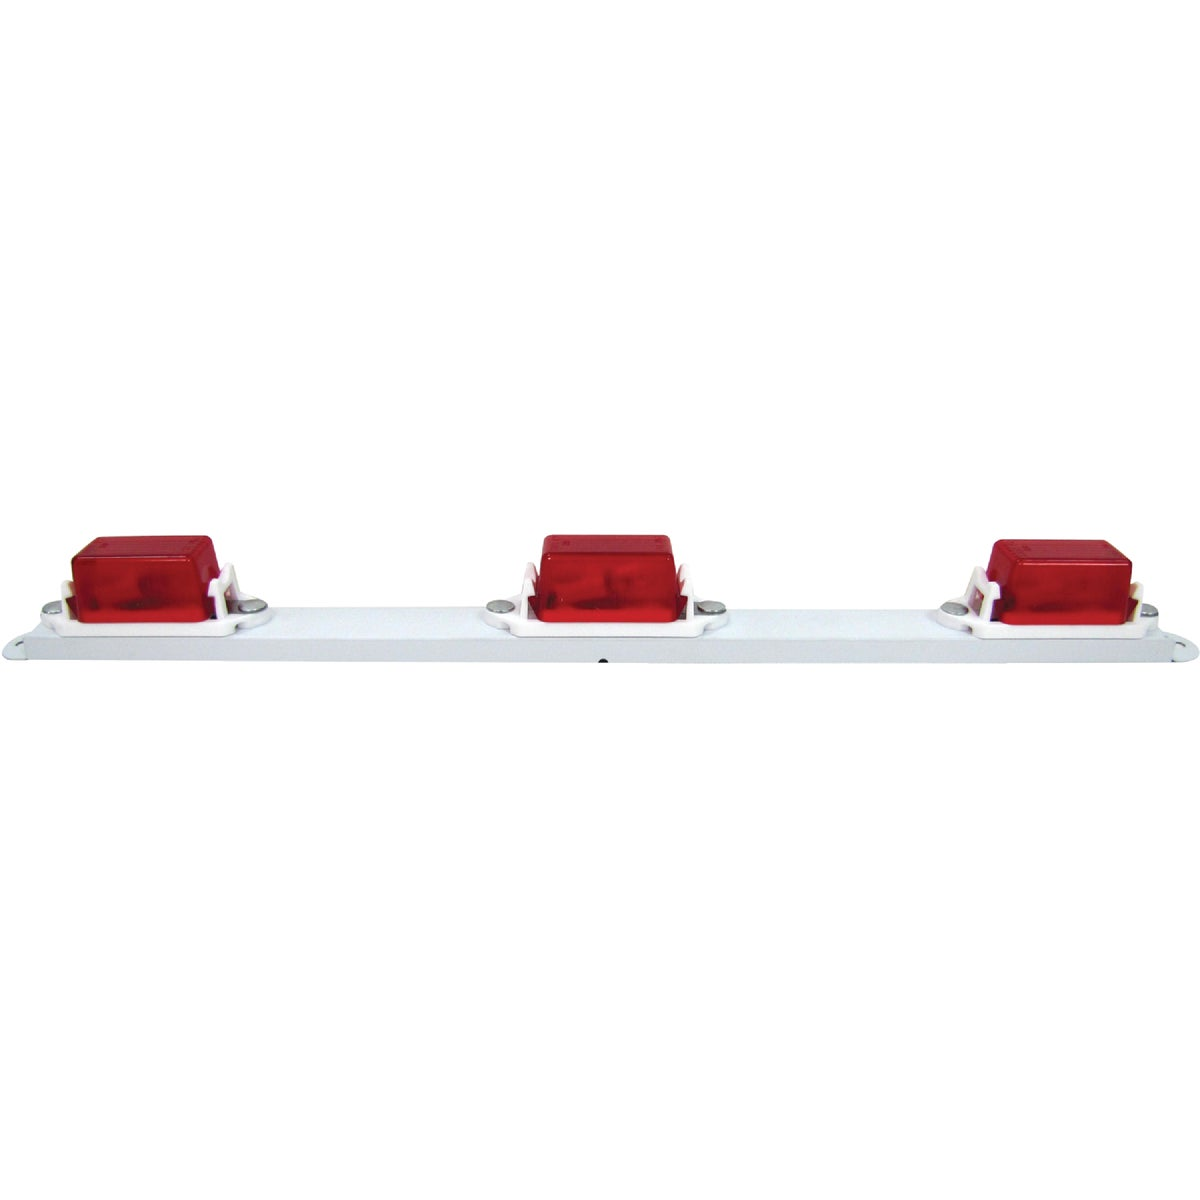 RED ID BAR LIGHT - V107-3R by Peterson Mfg Co